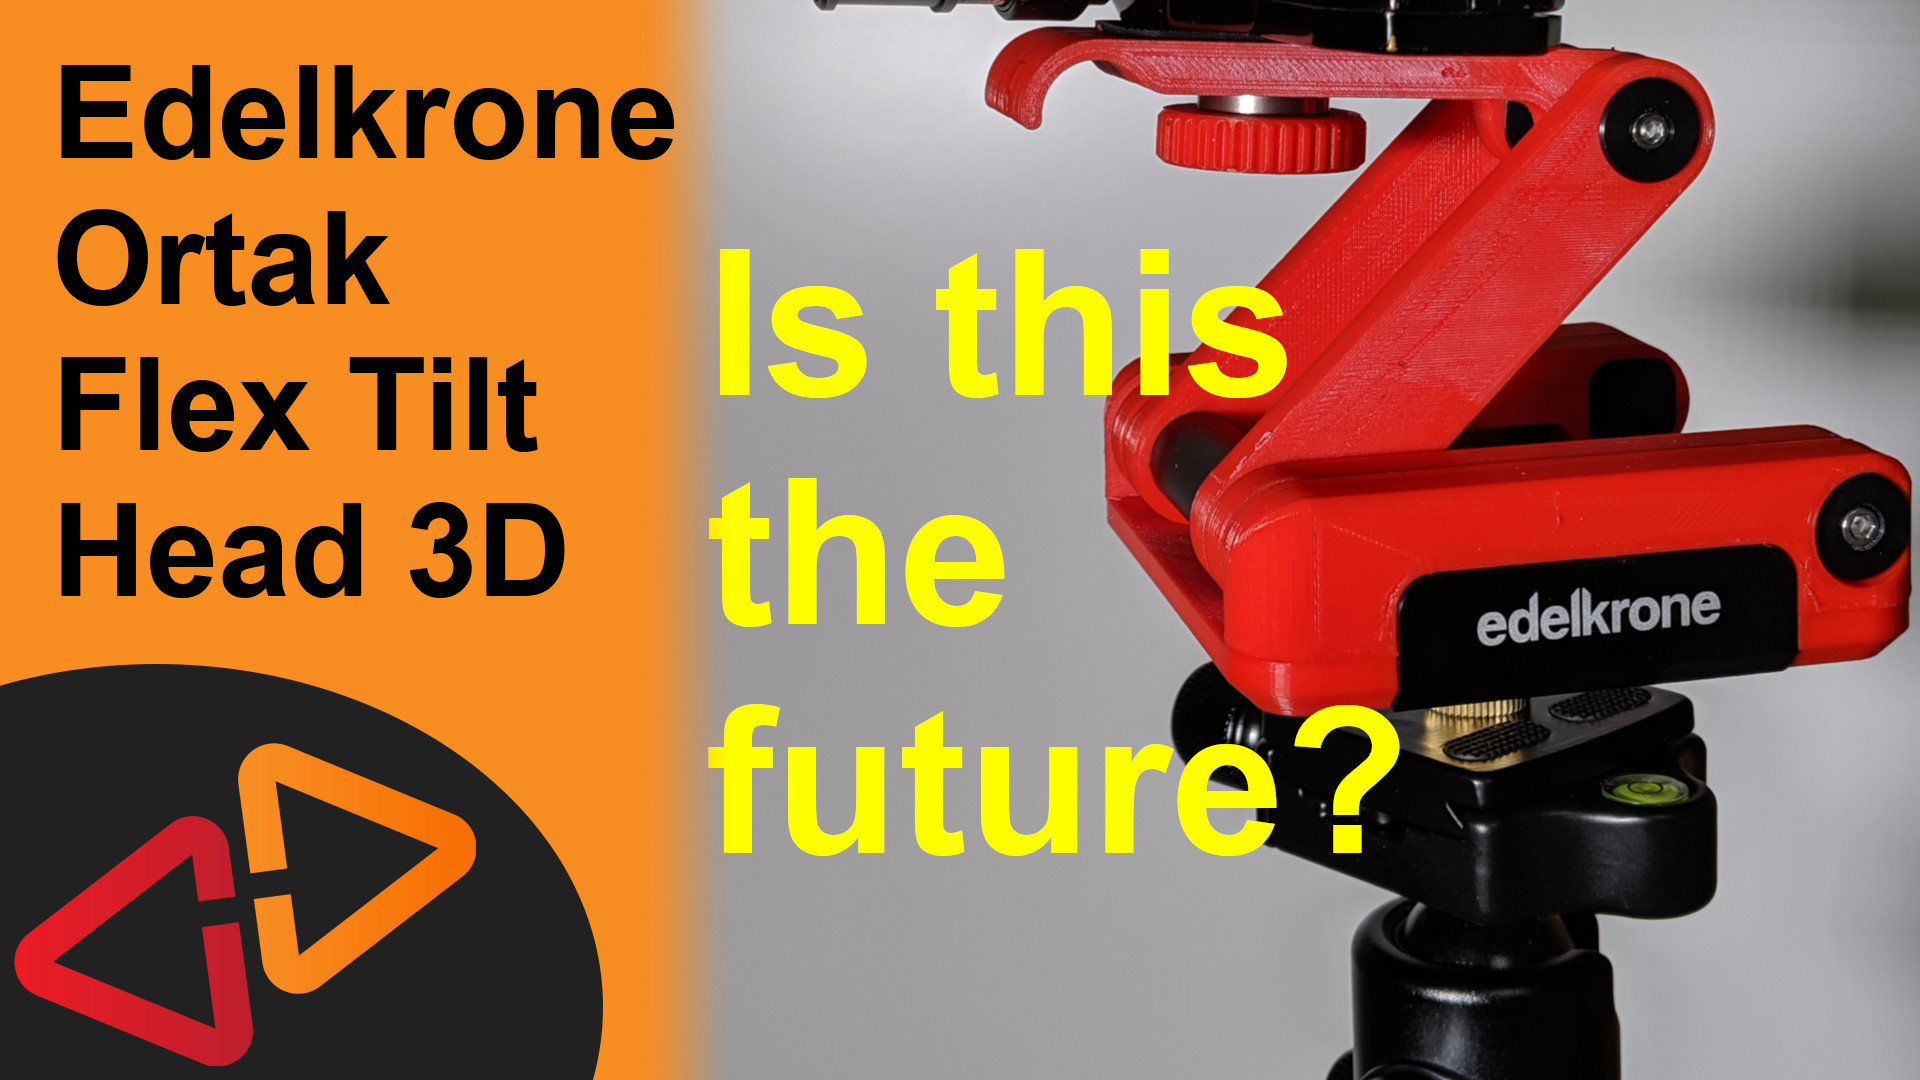 Edelkrone Ortak FlexTilt Head 3D – Is this the future of co-manufactured consumer products?